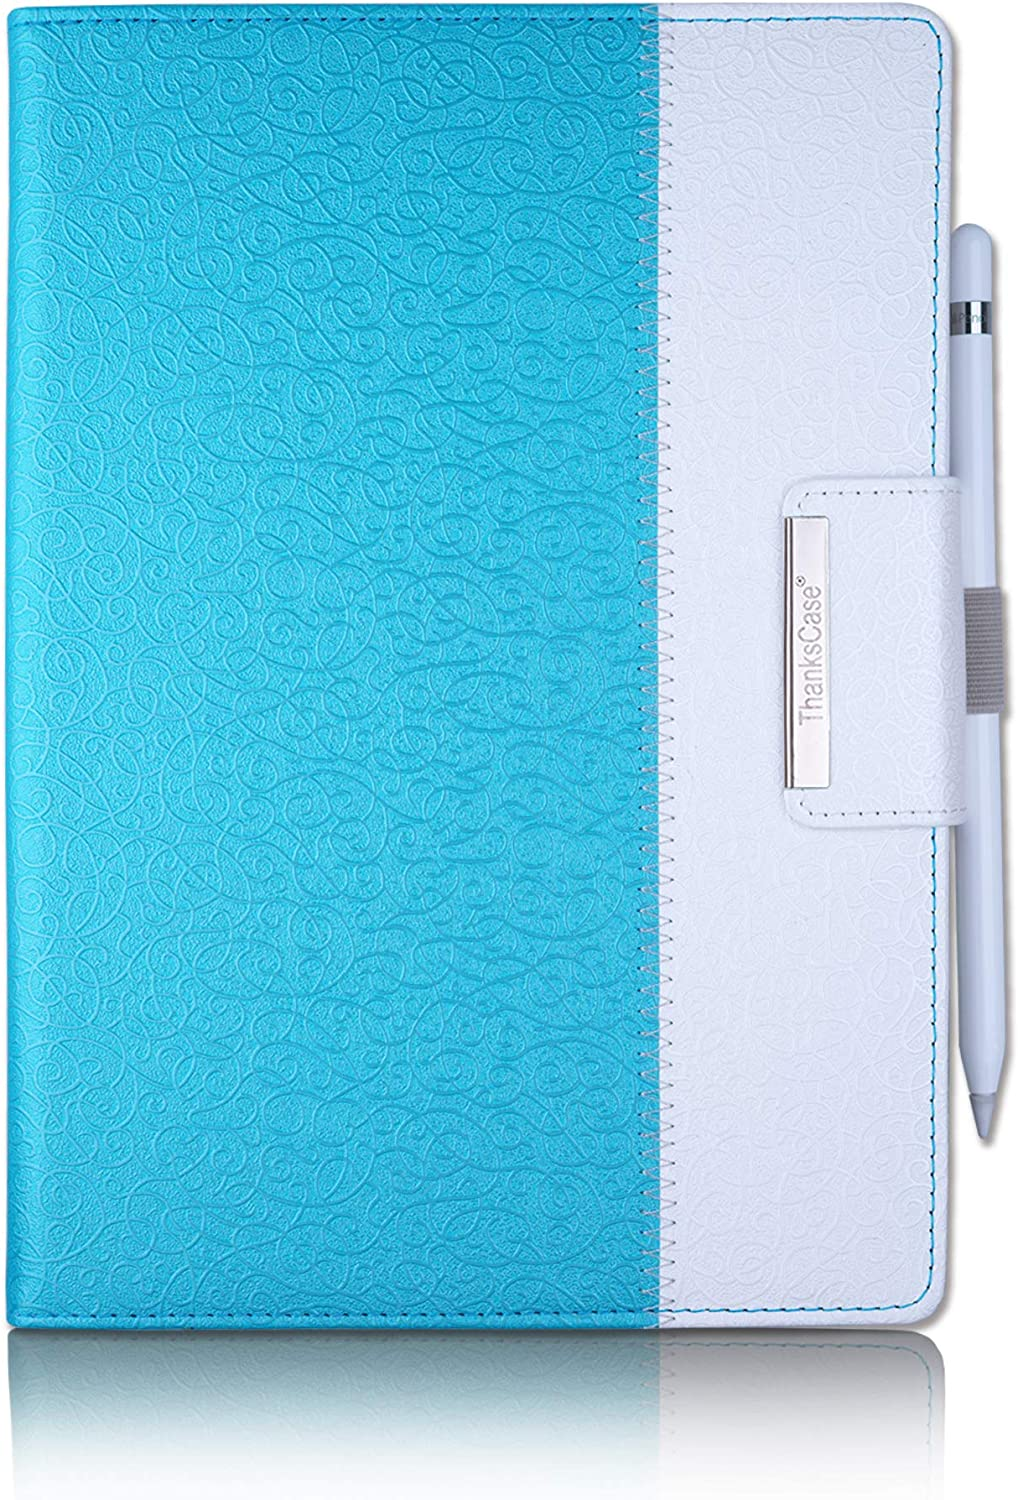 Thankscase iPad 9.7 inch 2018 2017 Case, iPad Air 2 Case, Rotating Case Smart Cover with Stand Build-in Wallet Pocket and Hand Strap for Apple iPad 6th / 5th Generation, iPad Air 2 (Teal Blue)